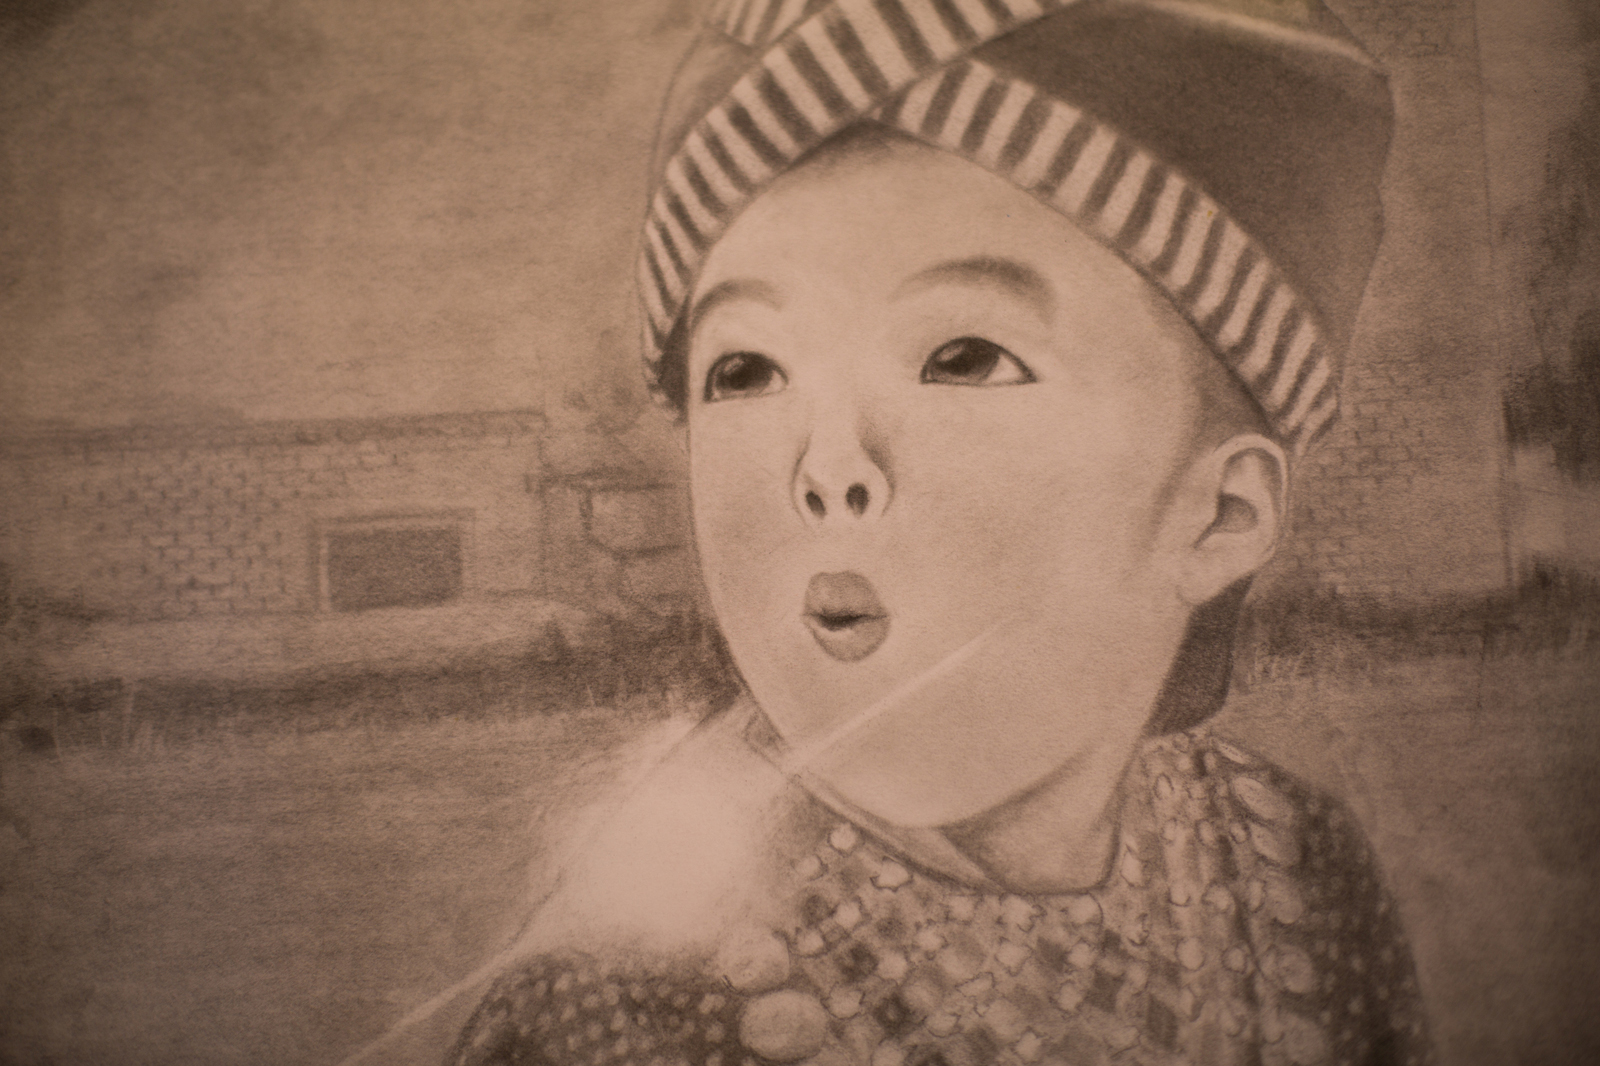 Artwork from Hmong exhibit at UC Merced's gallery